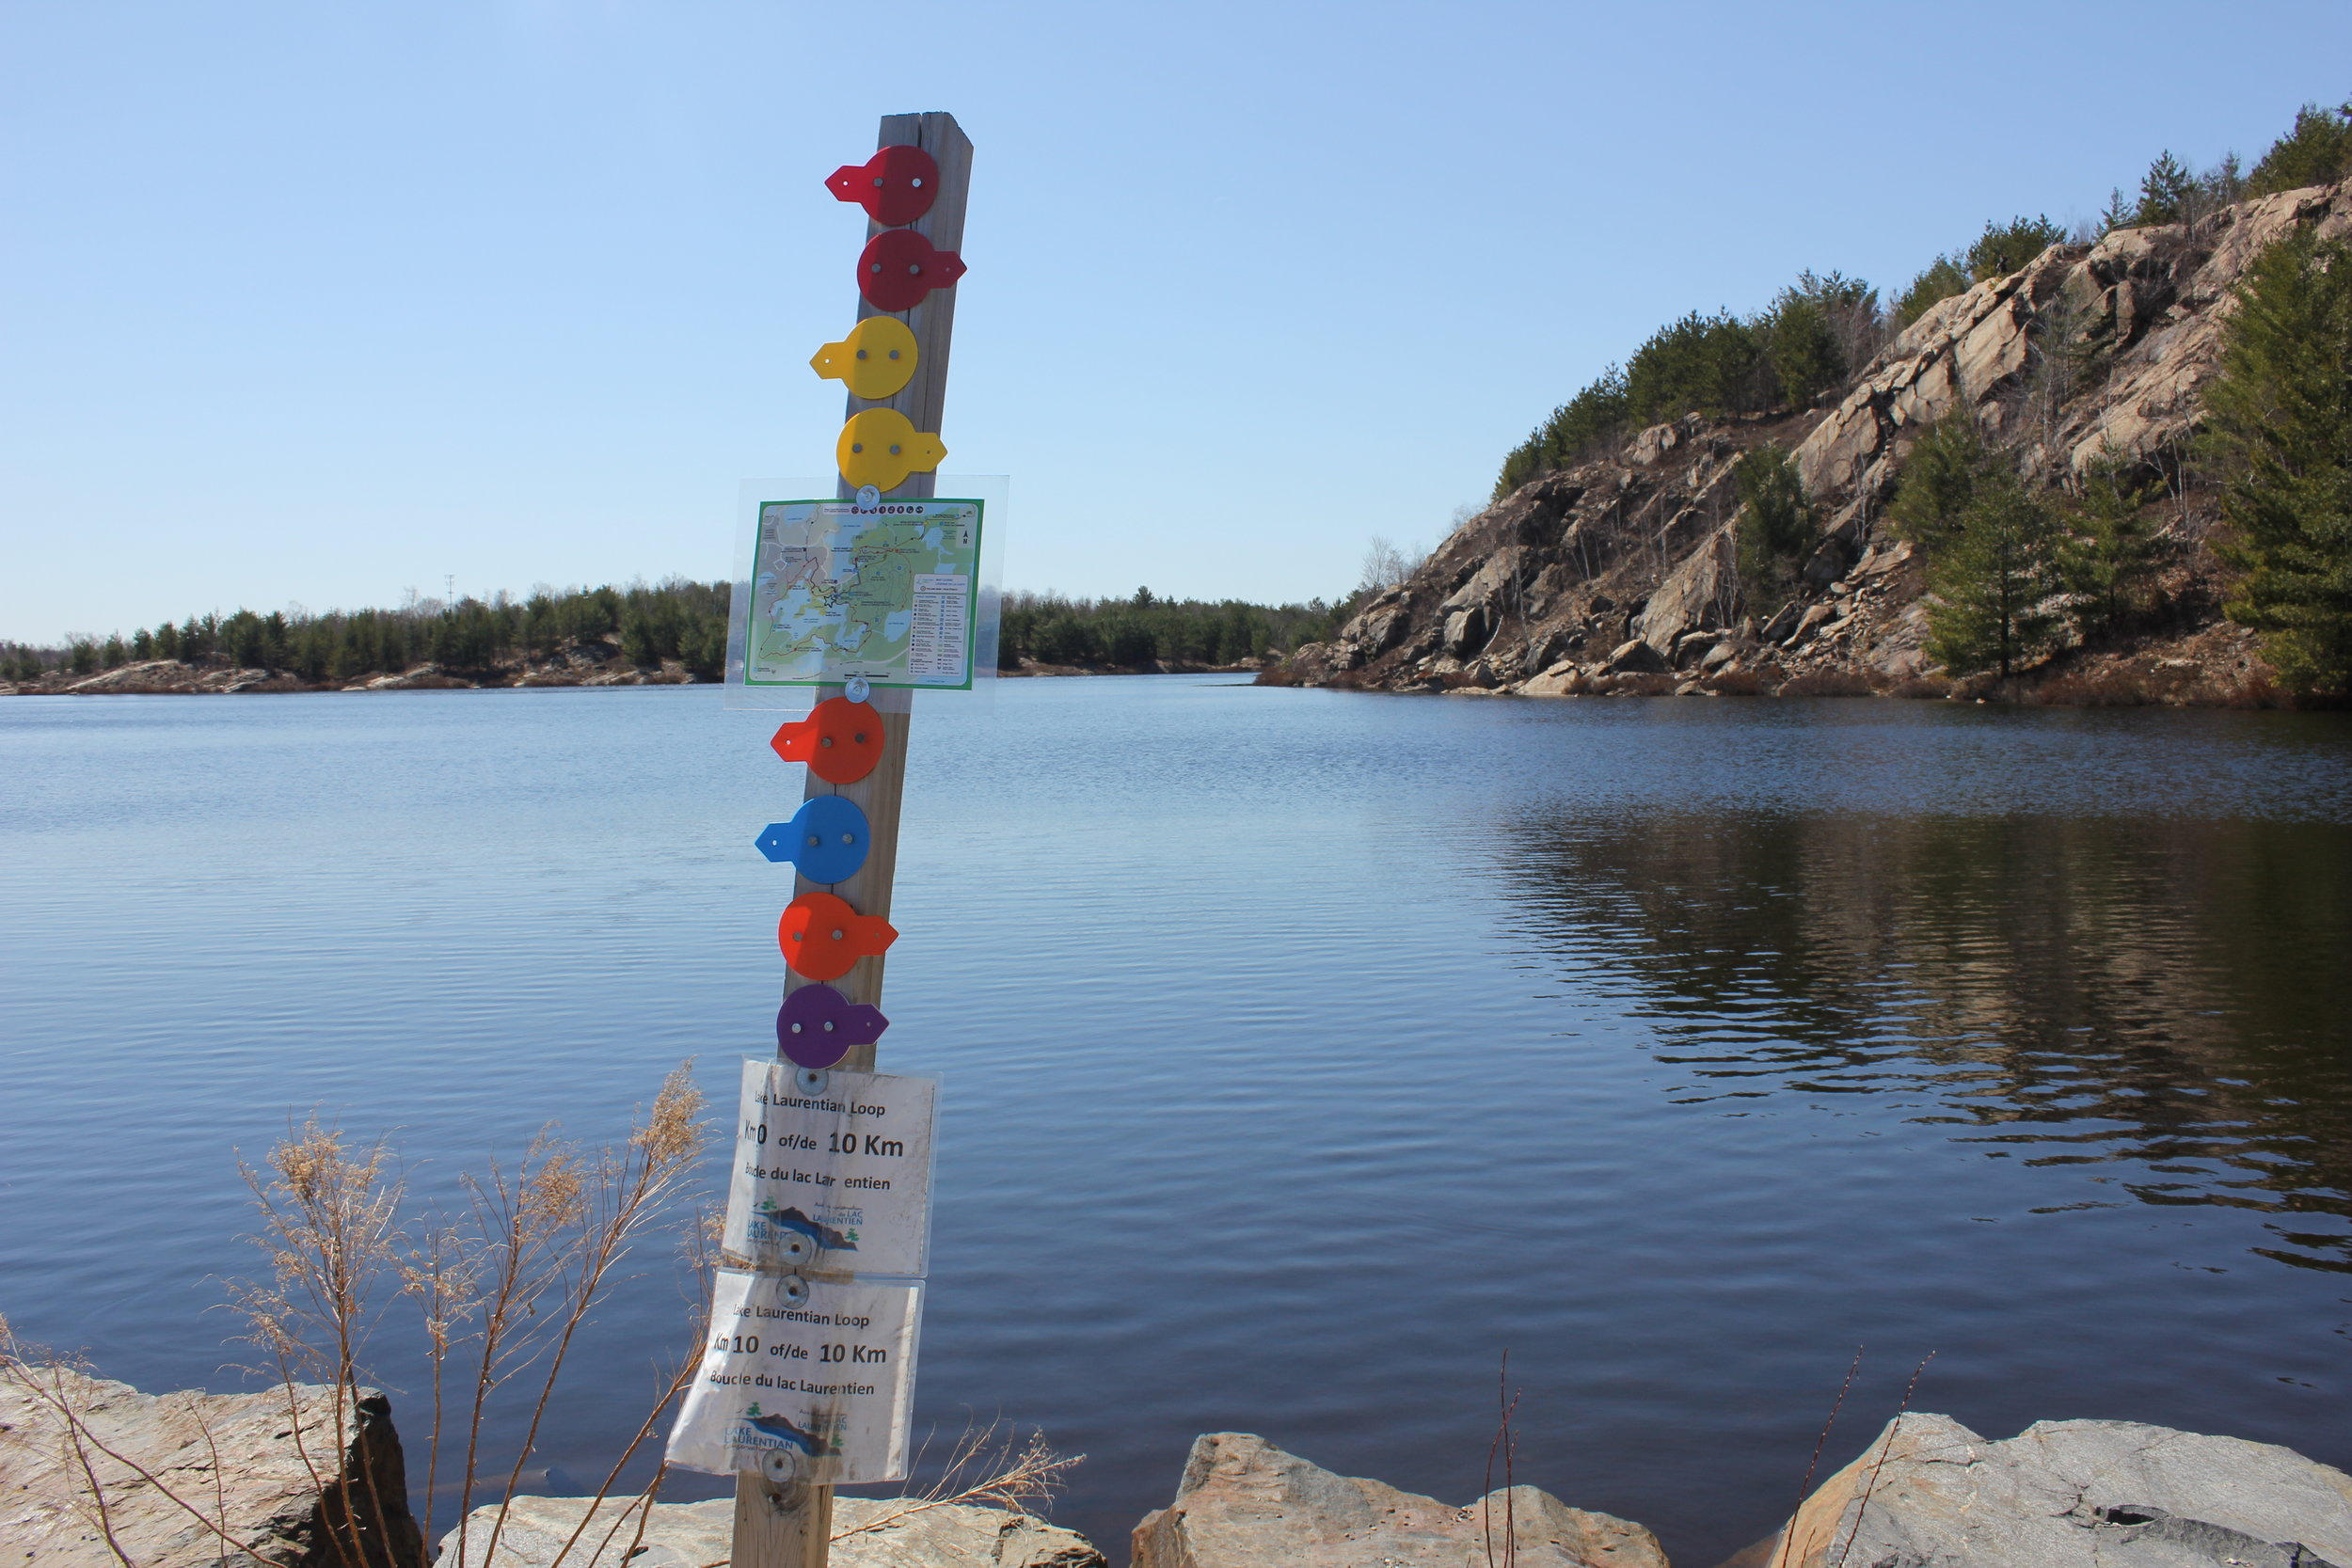 The Lake Laurentian Conservation Area trail signs